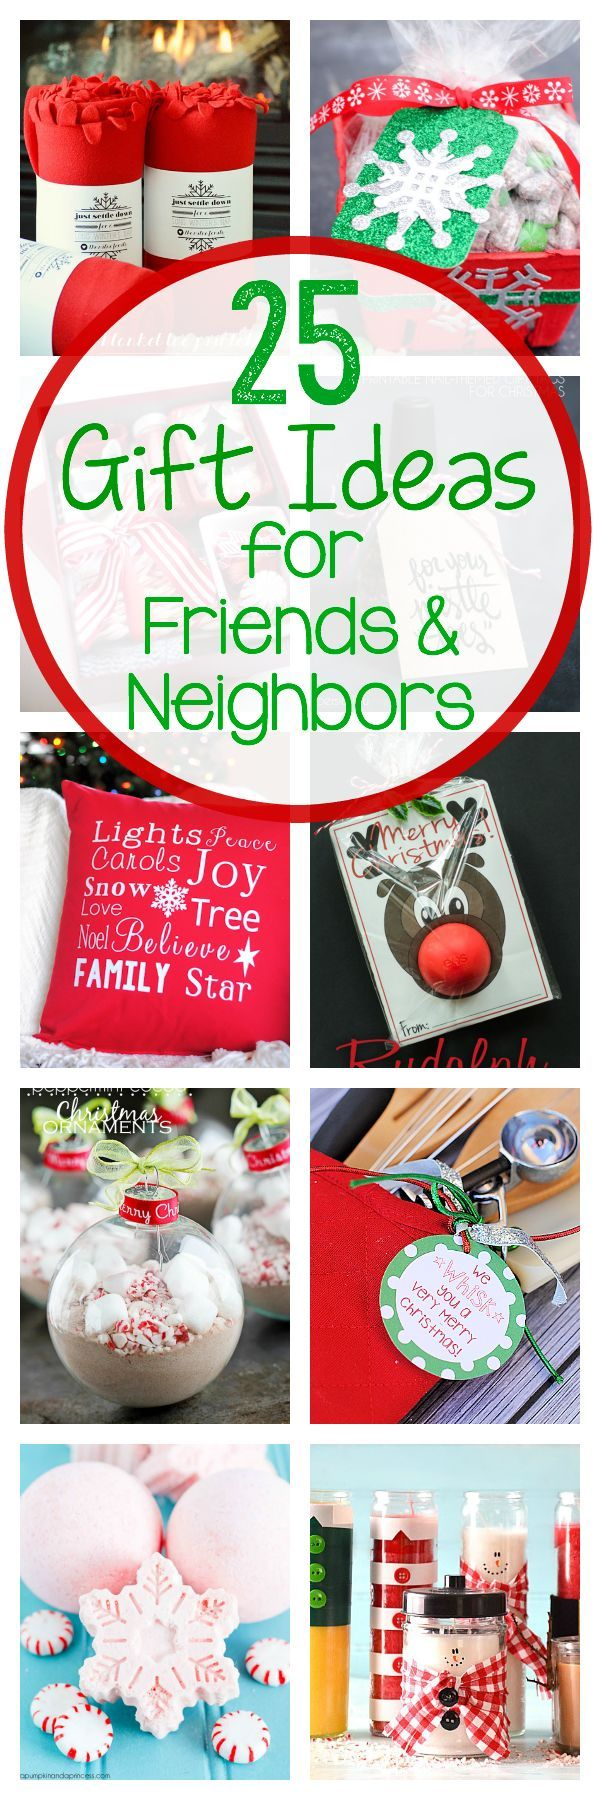 149 best images about basket ideas on pinterest gifts for Cute homemade christmas gift ideas for friends